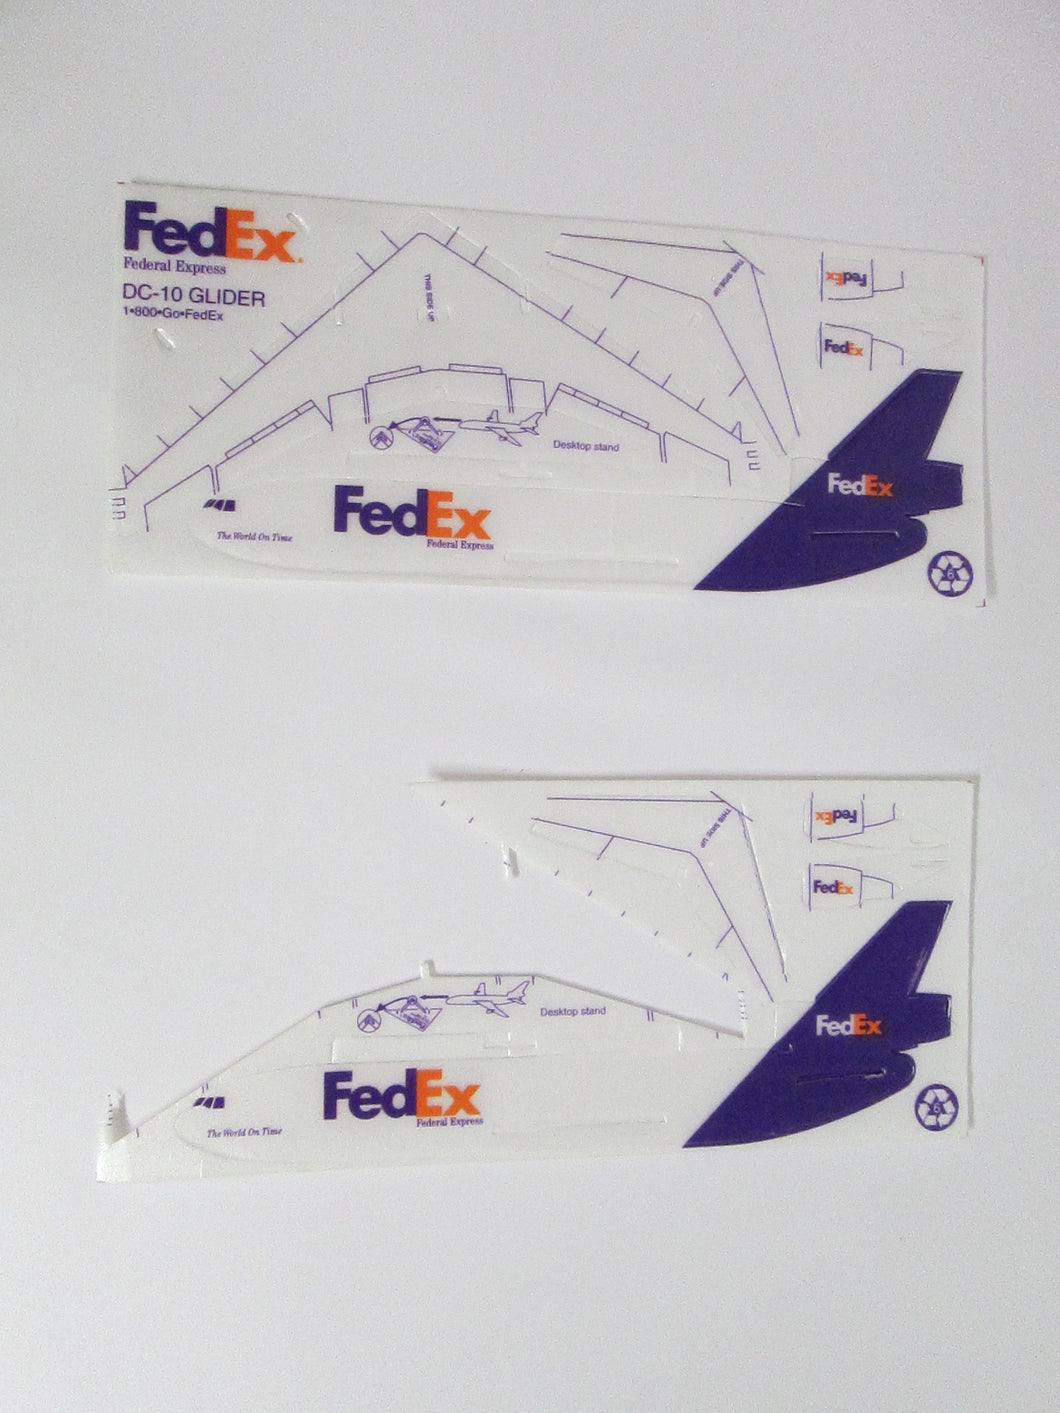 FedEx DC-10 Glider Styrofoam with extra parts